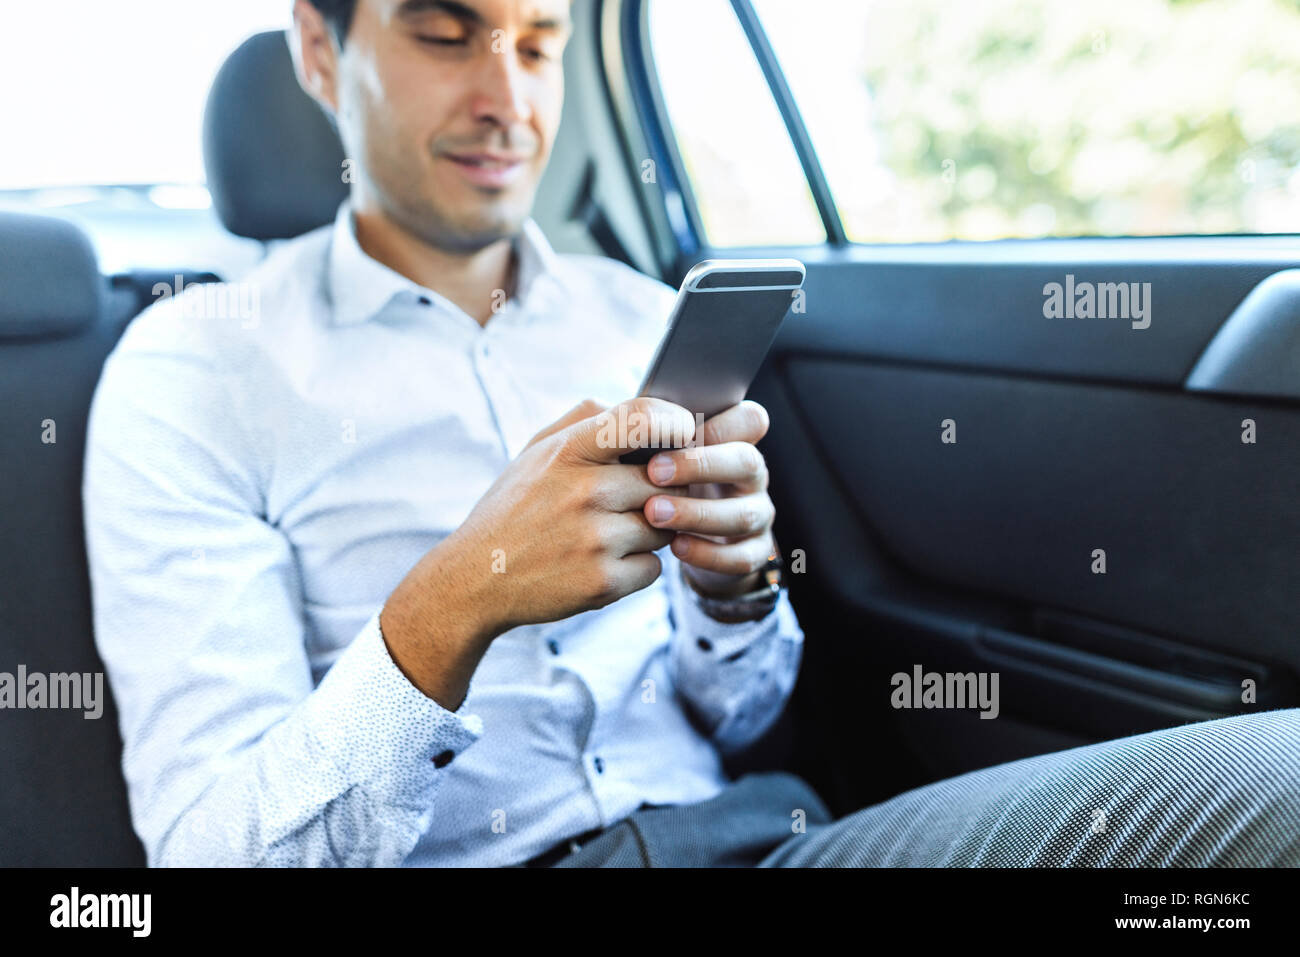 Man using cell phone on back seat of a car - Stock Image